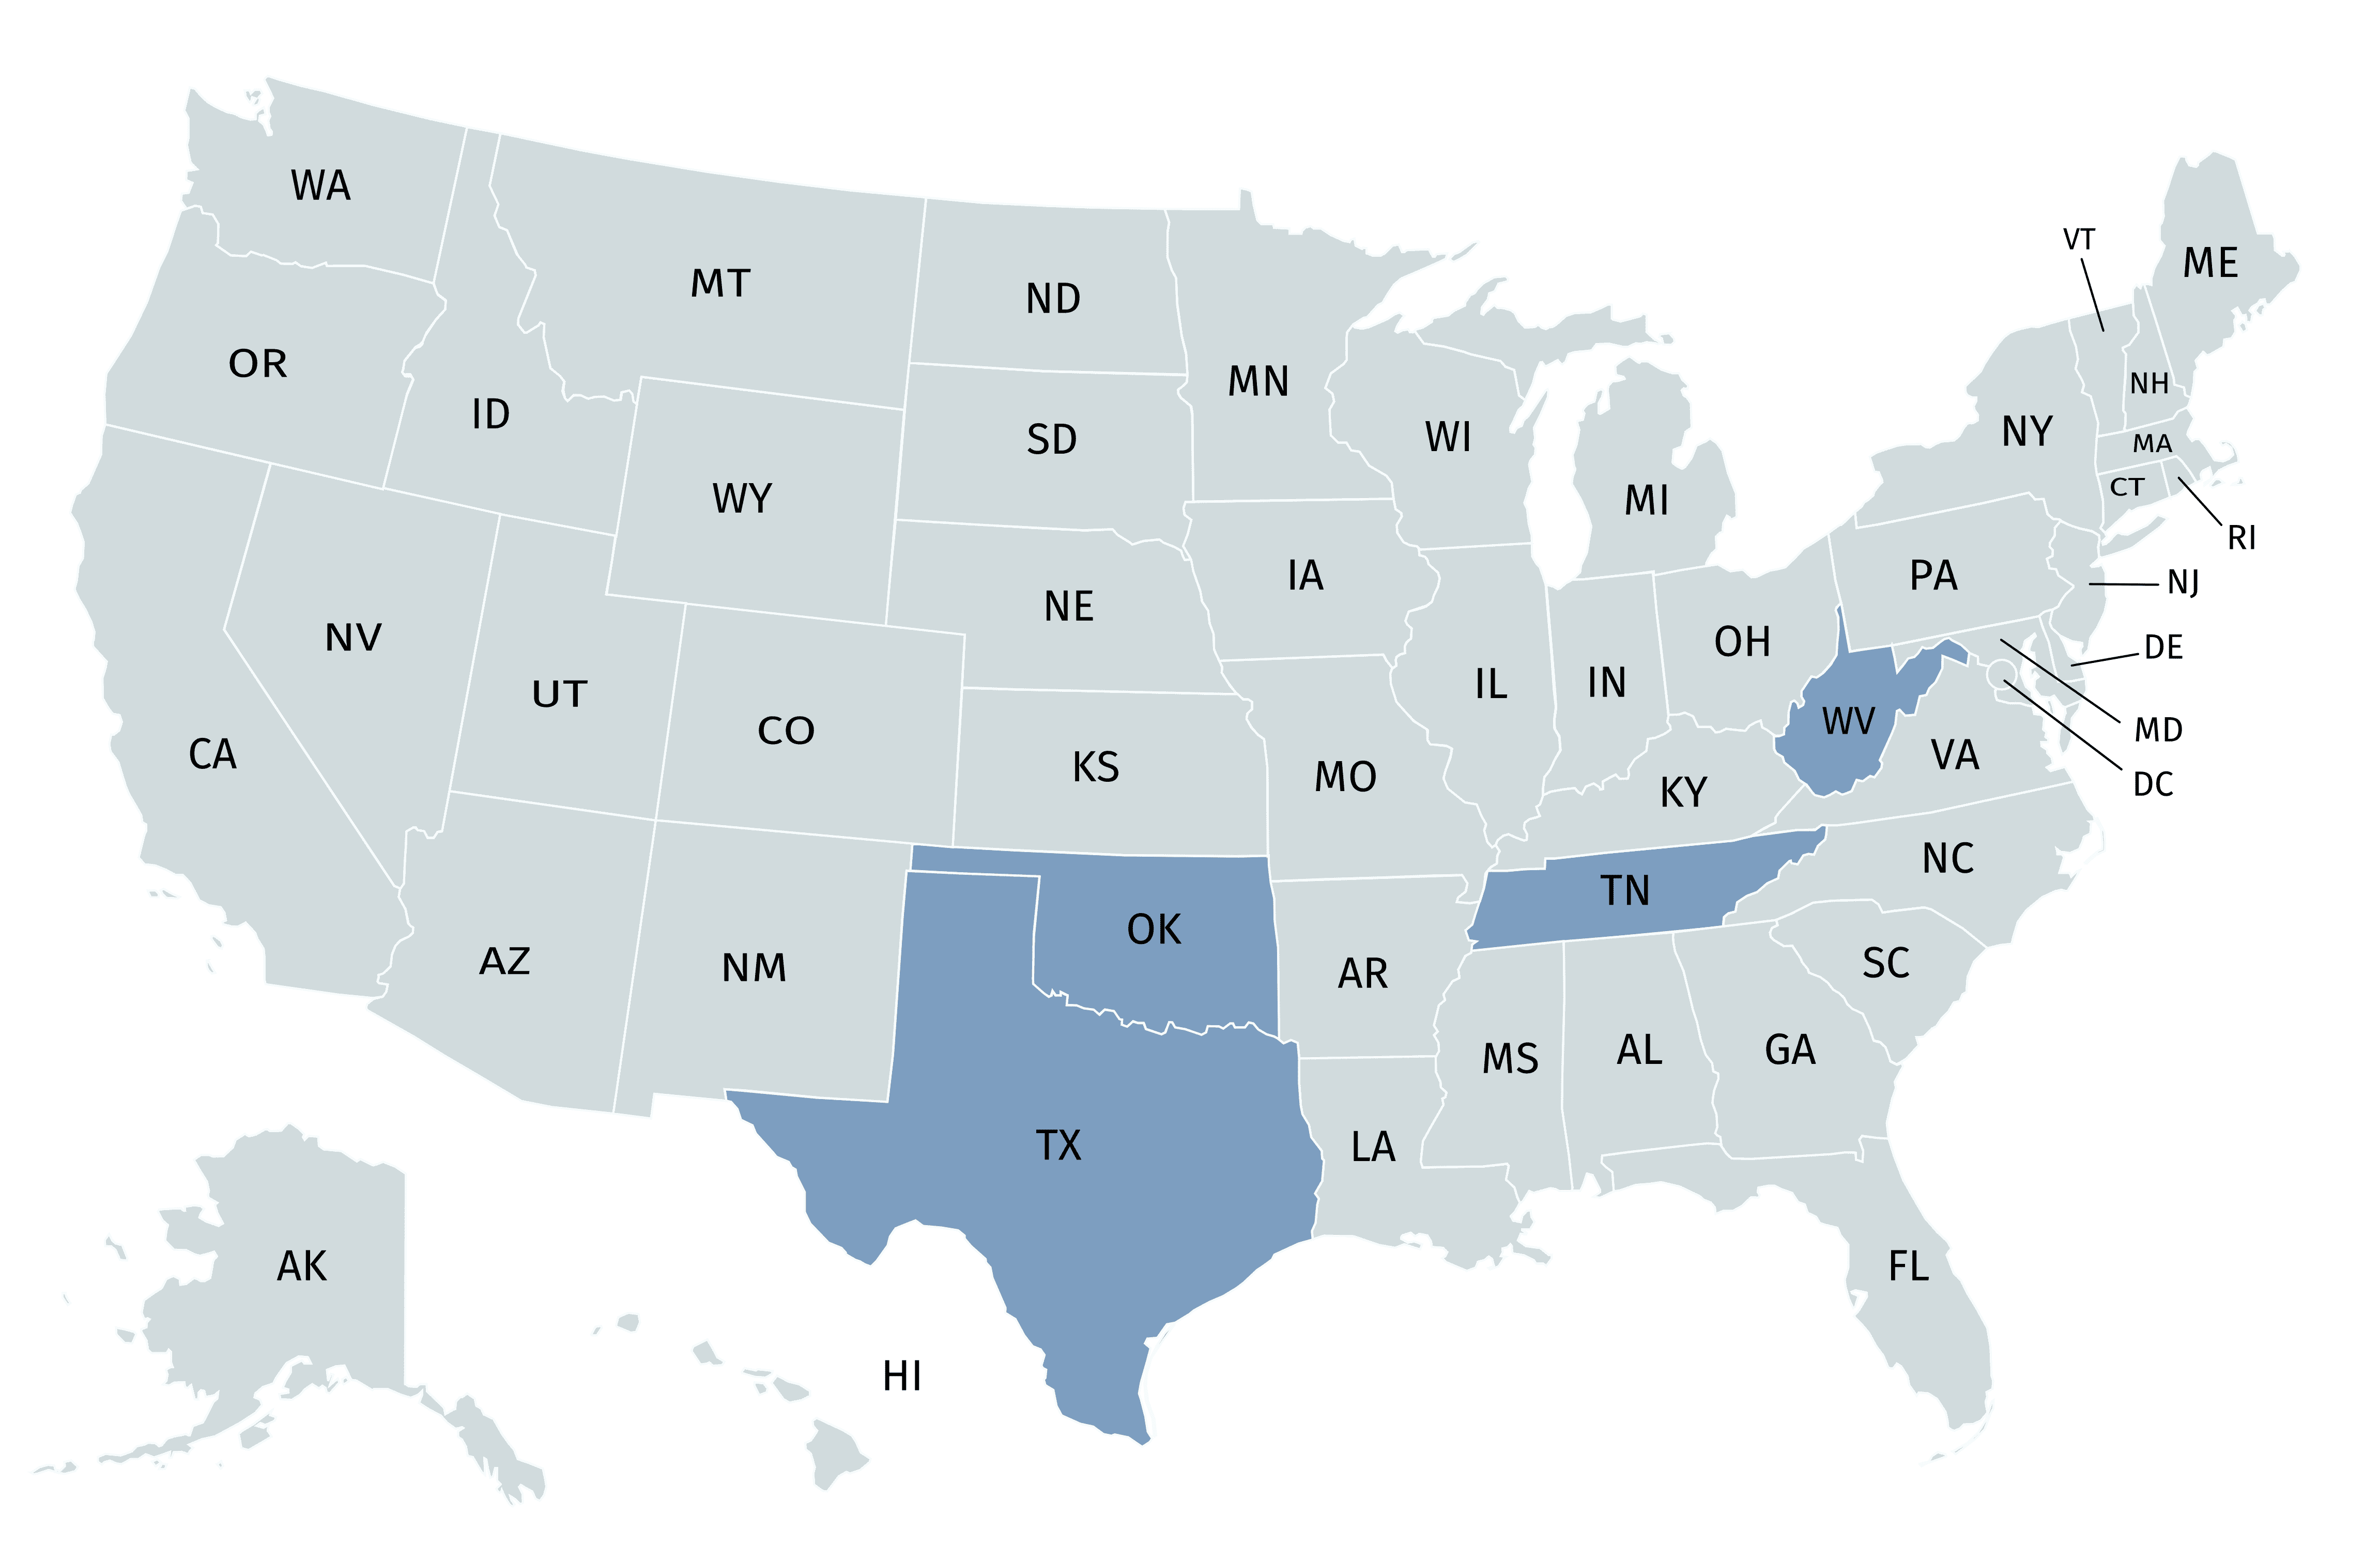 The upcoming states of adoptions for science - next generation science standards